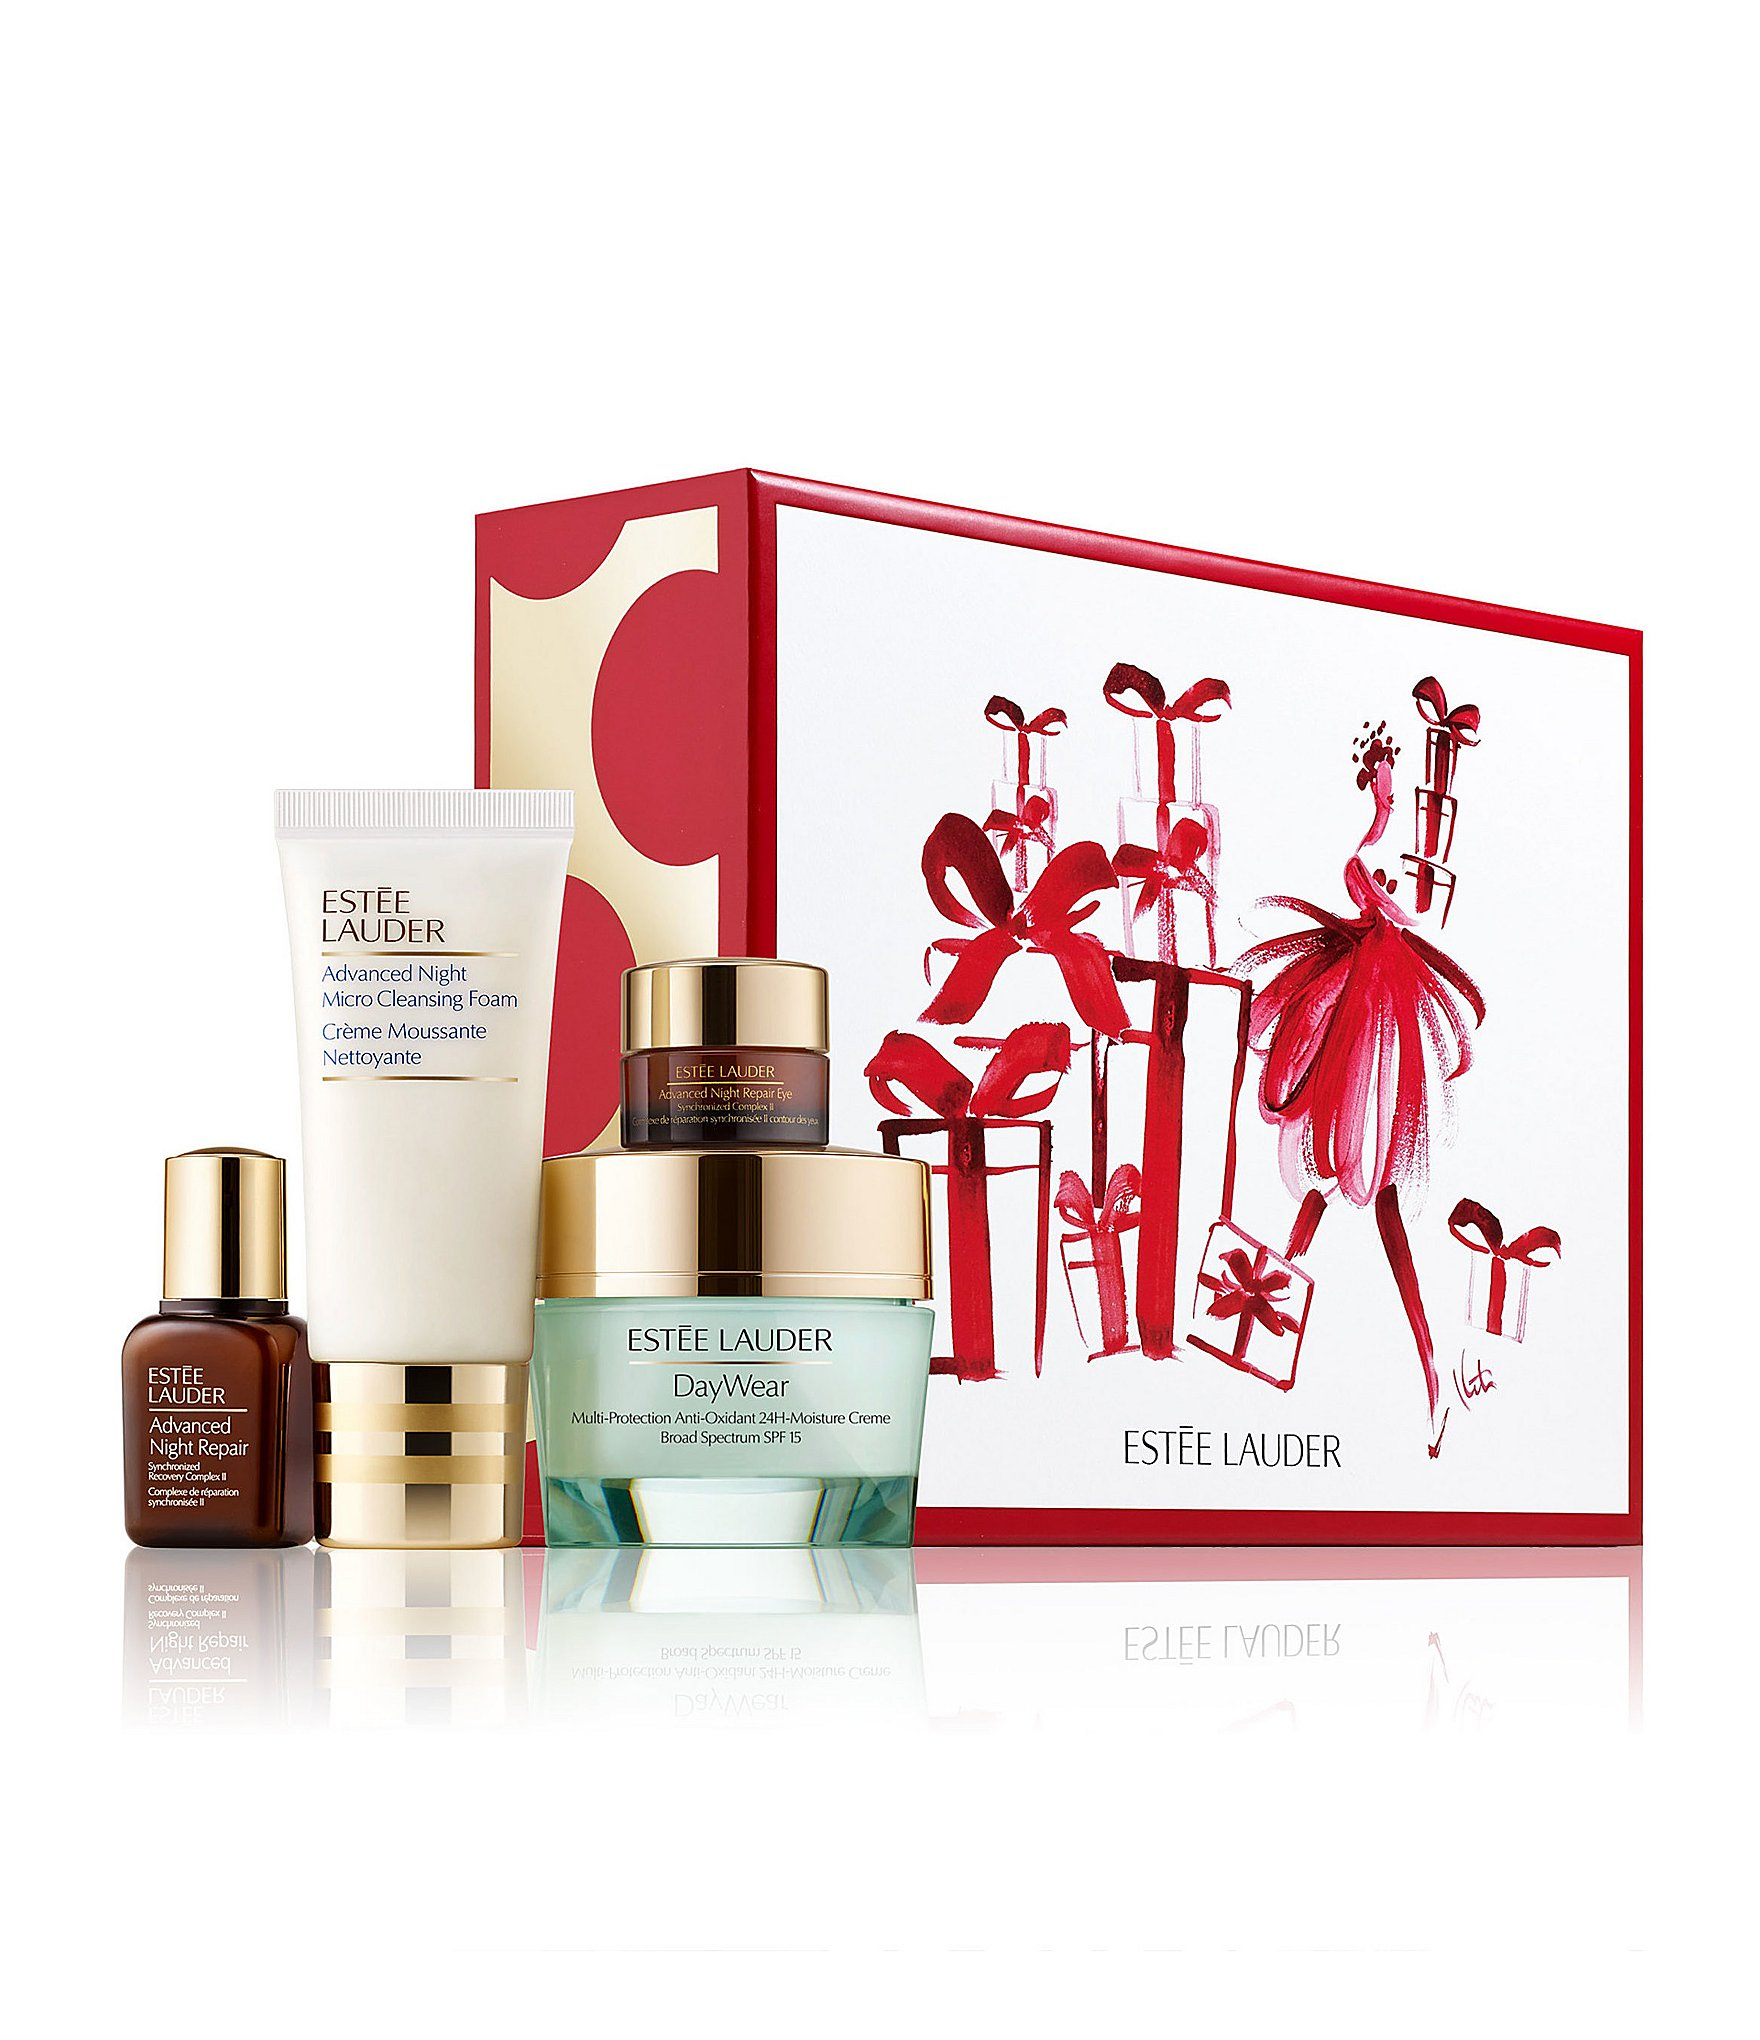 estee lauder deals dillards - ageas coupon 2018